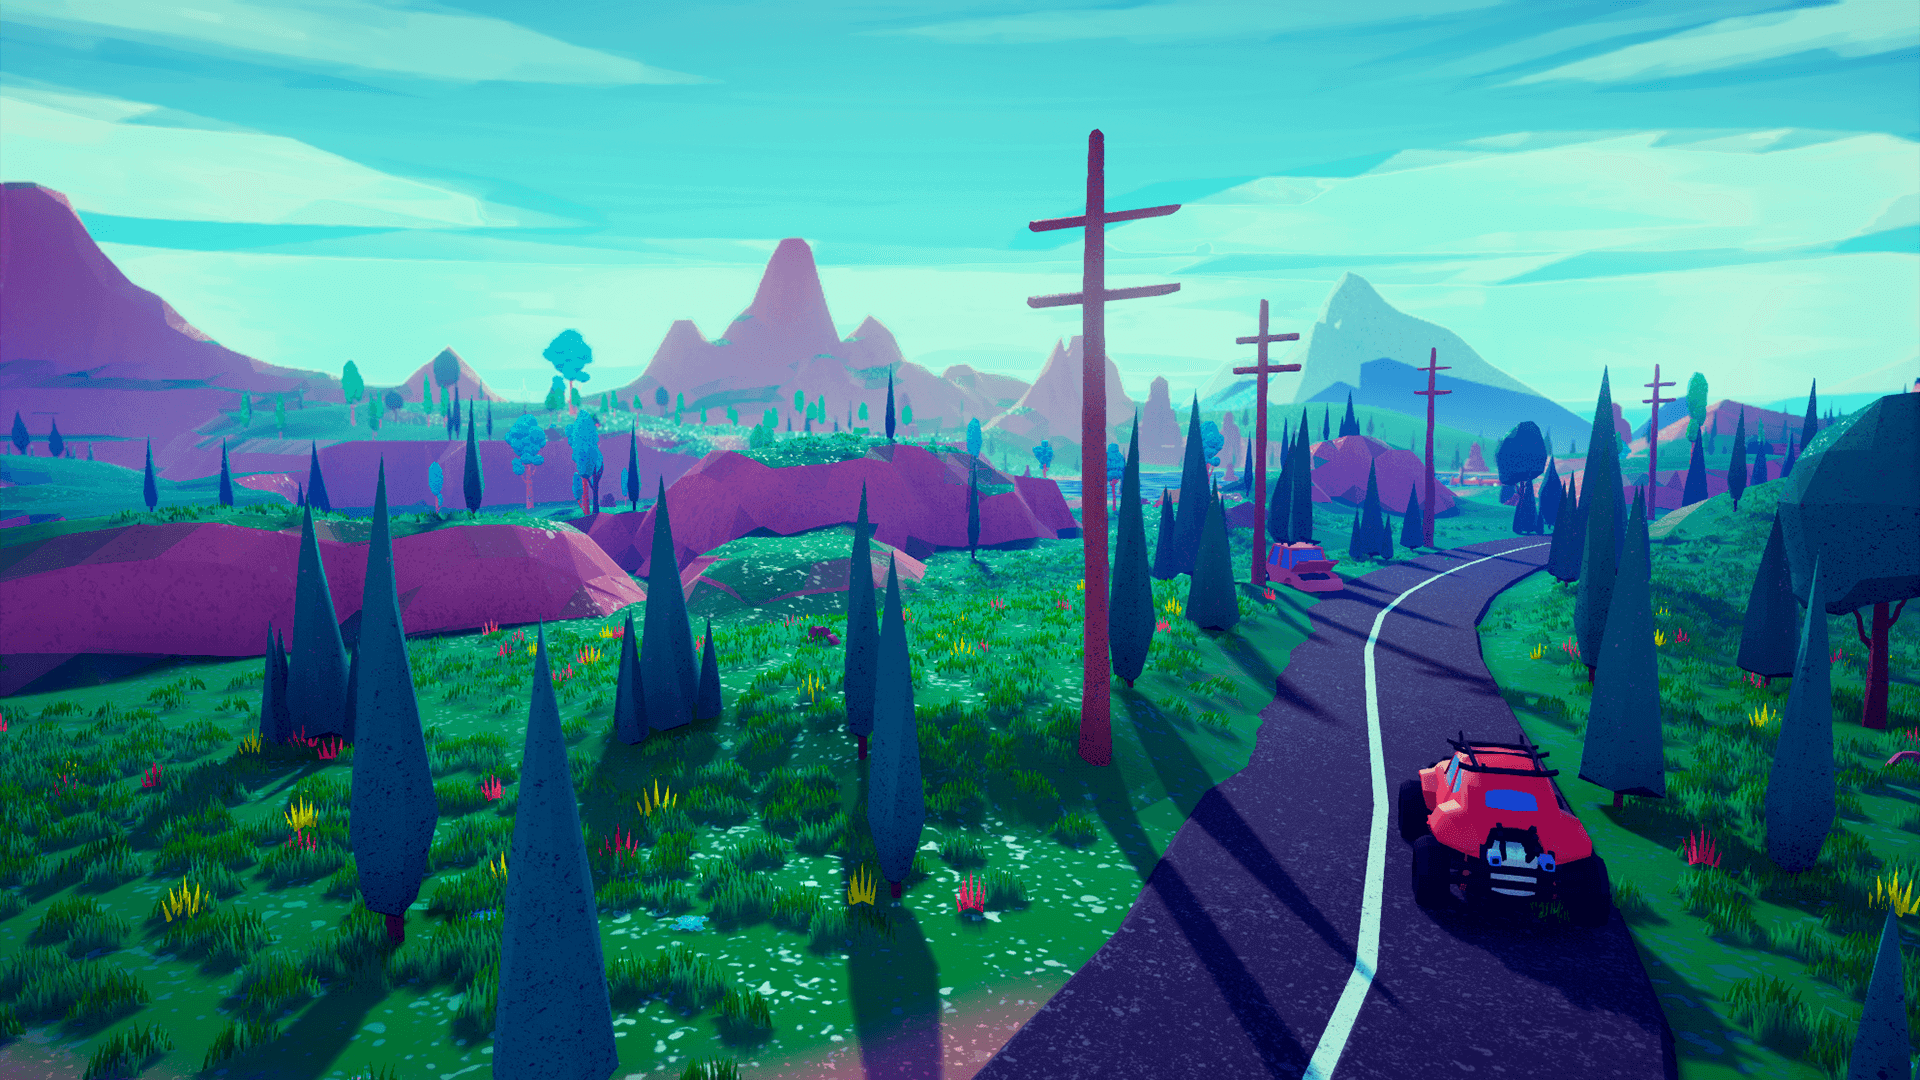 Low Poly Stylized Environment by Emek Ozben in Environments